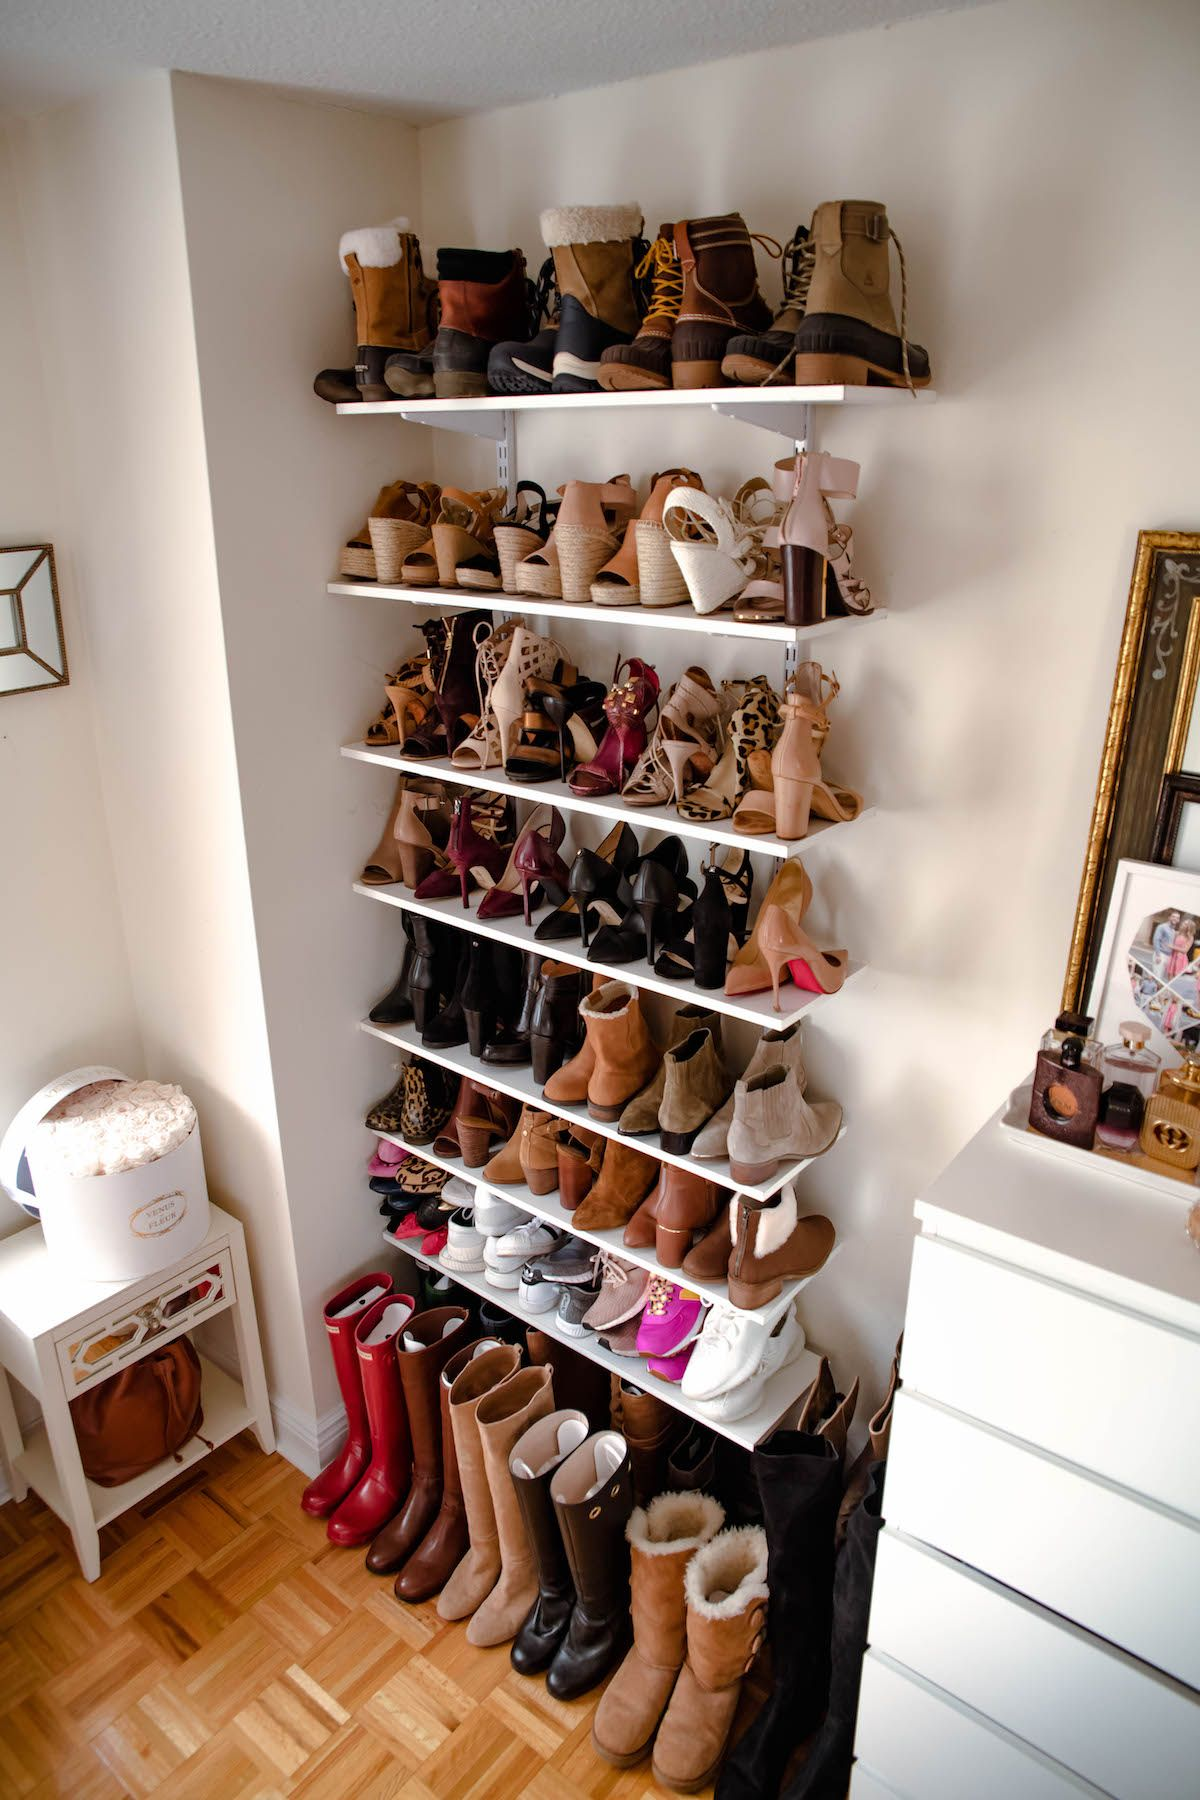 How To Store Off Season Clothing Keep Your Closet Organized Year Round Katie S Bliss In 2020 Organization Bedroom Diy Shoe Storage Stylish Bedroom